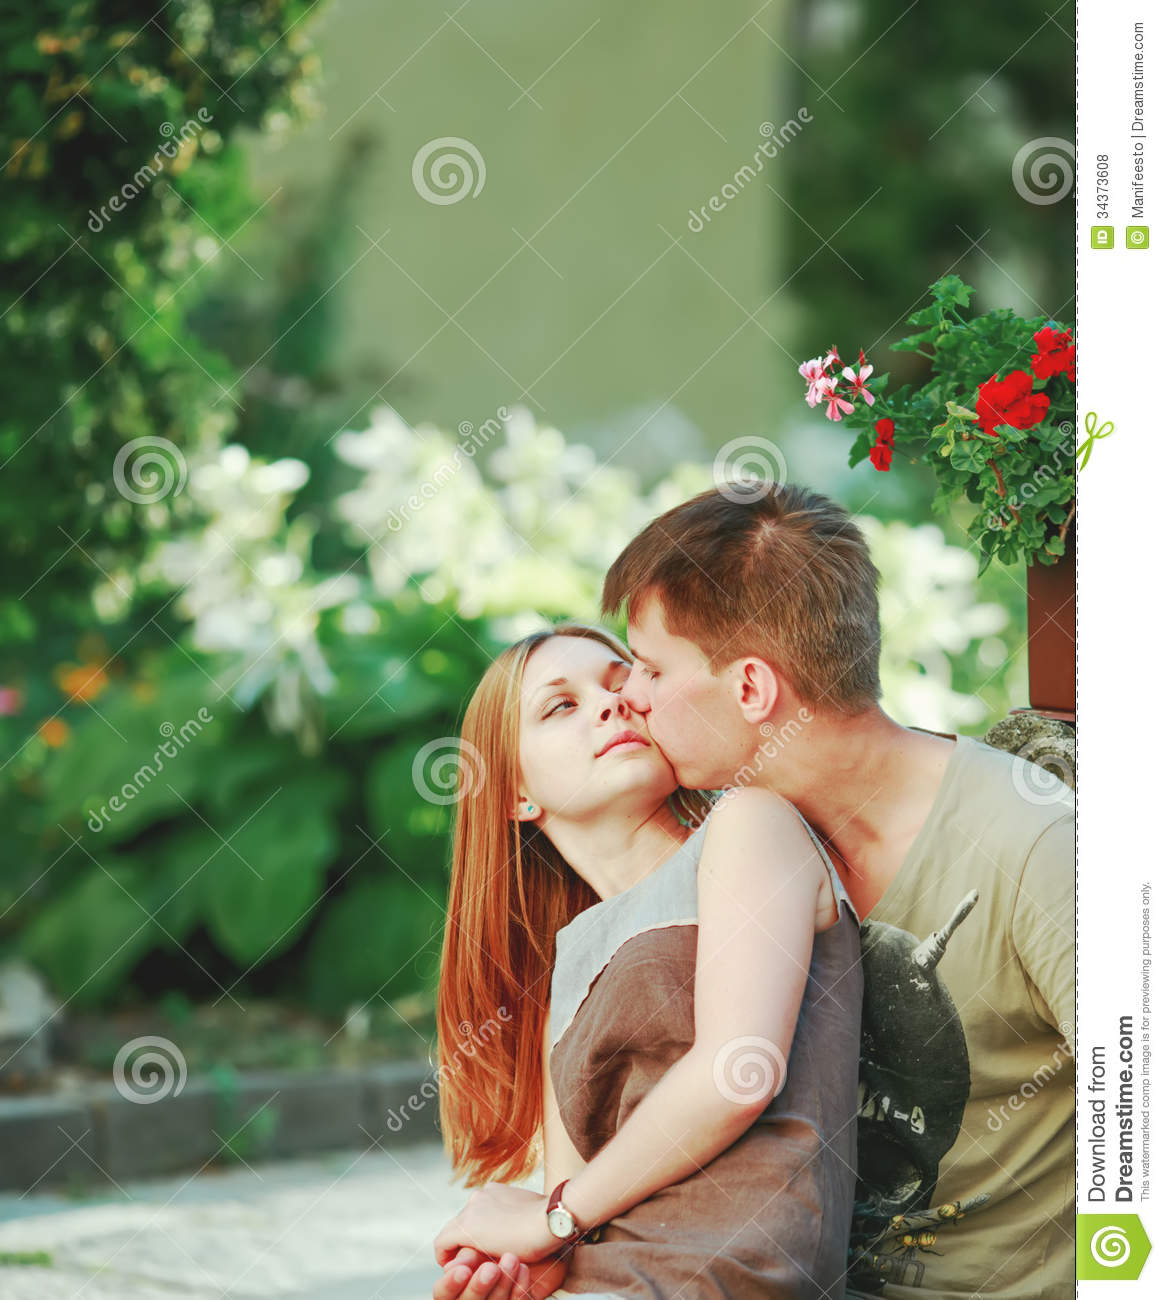 Great Relationships Royalty Free Stock Photos Image